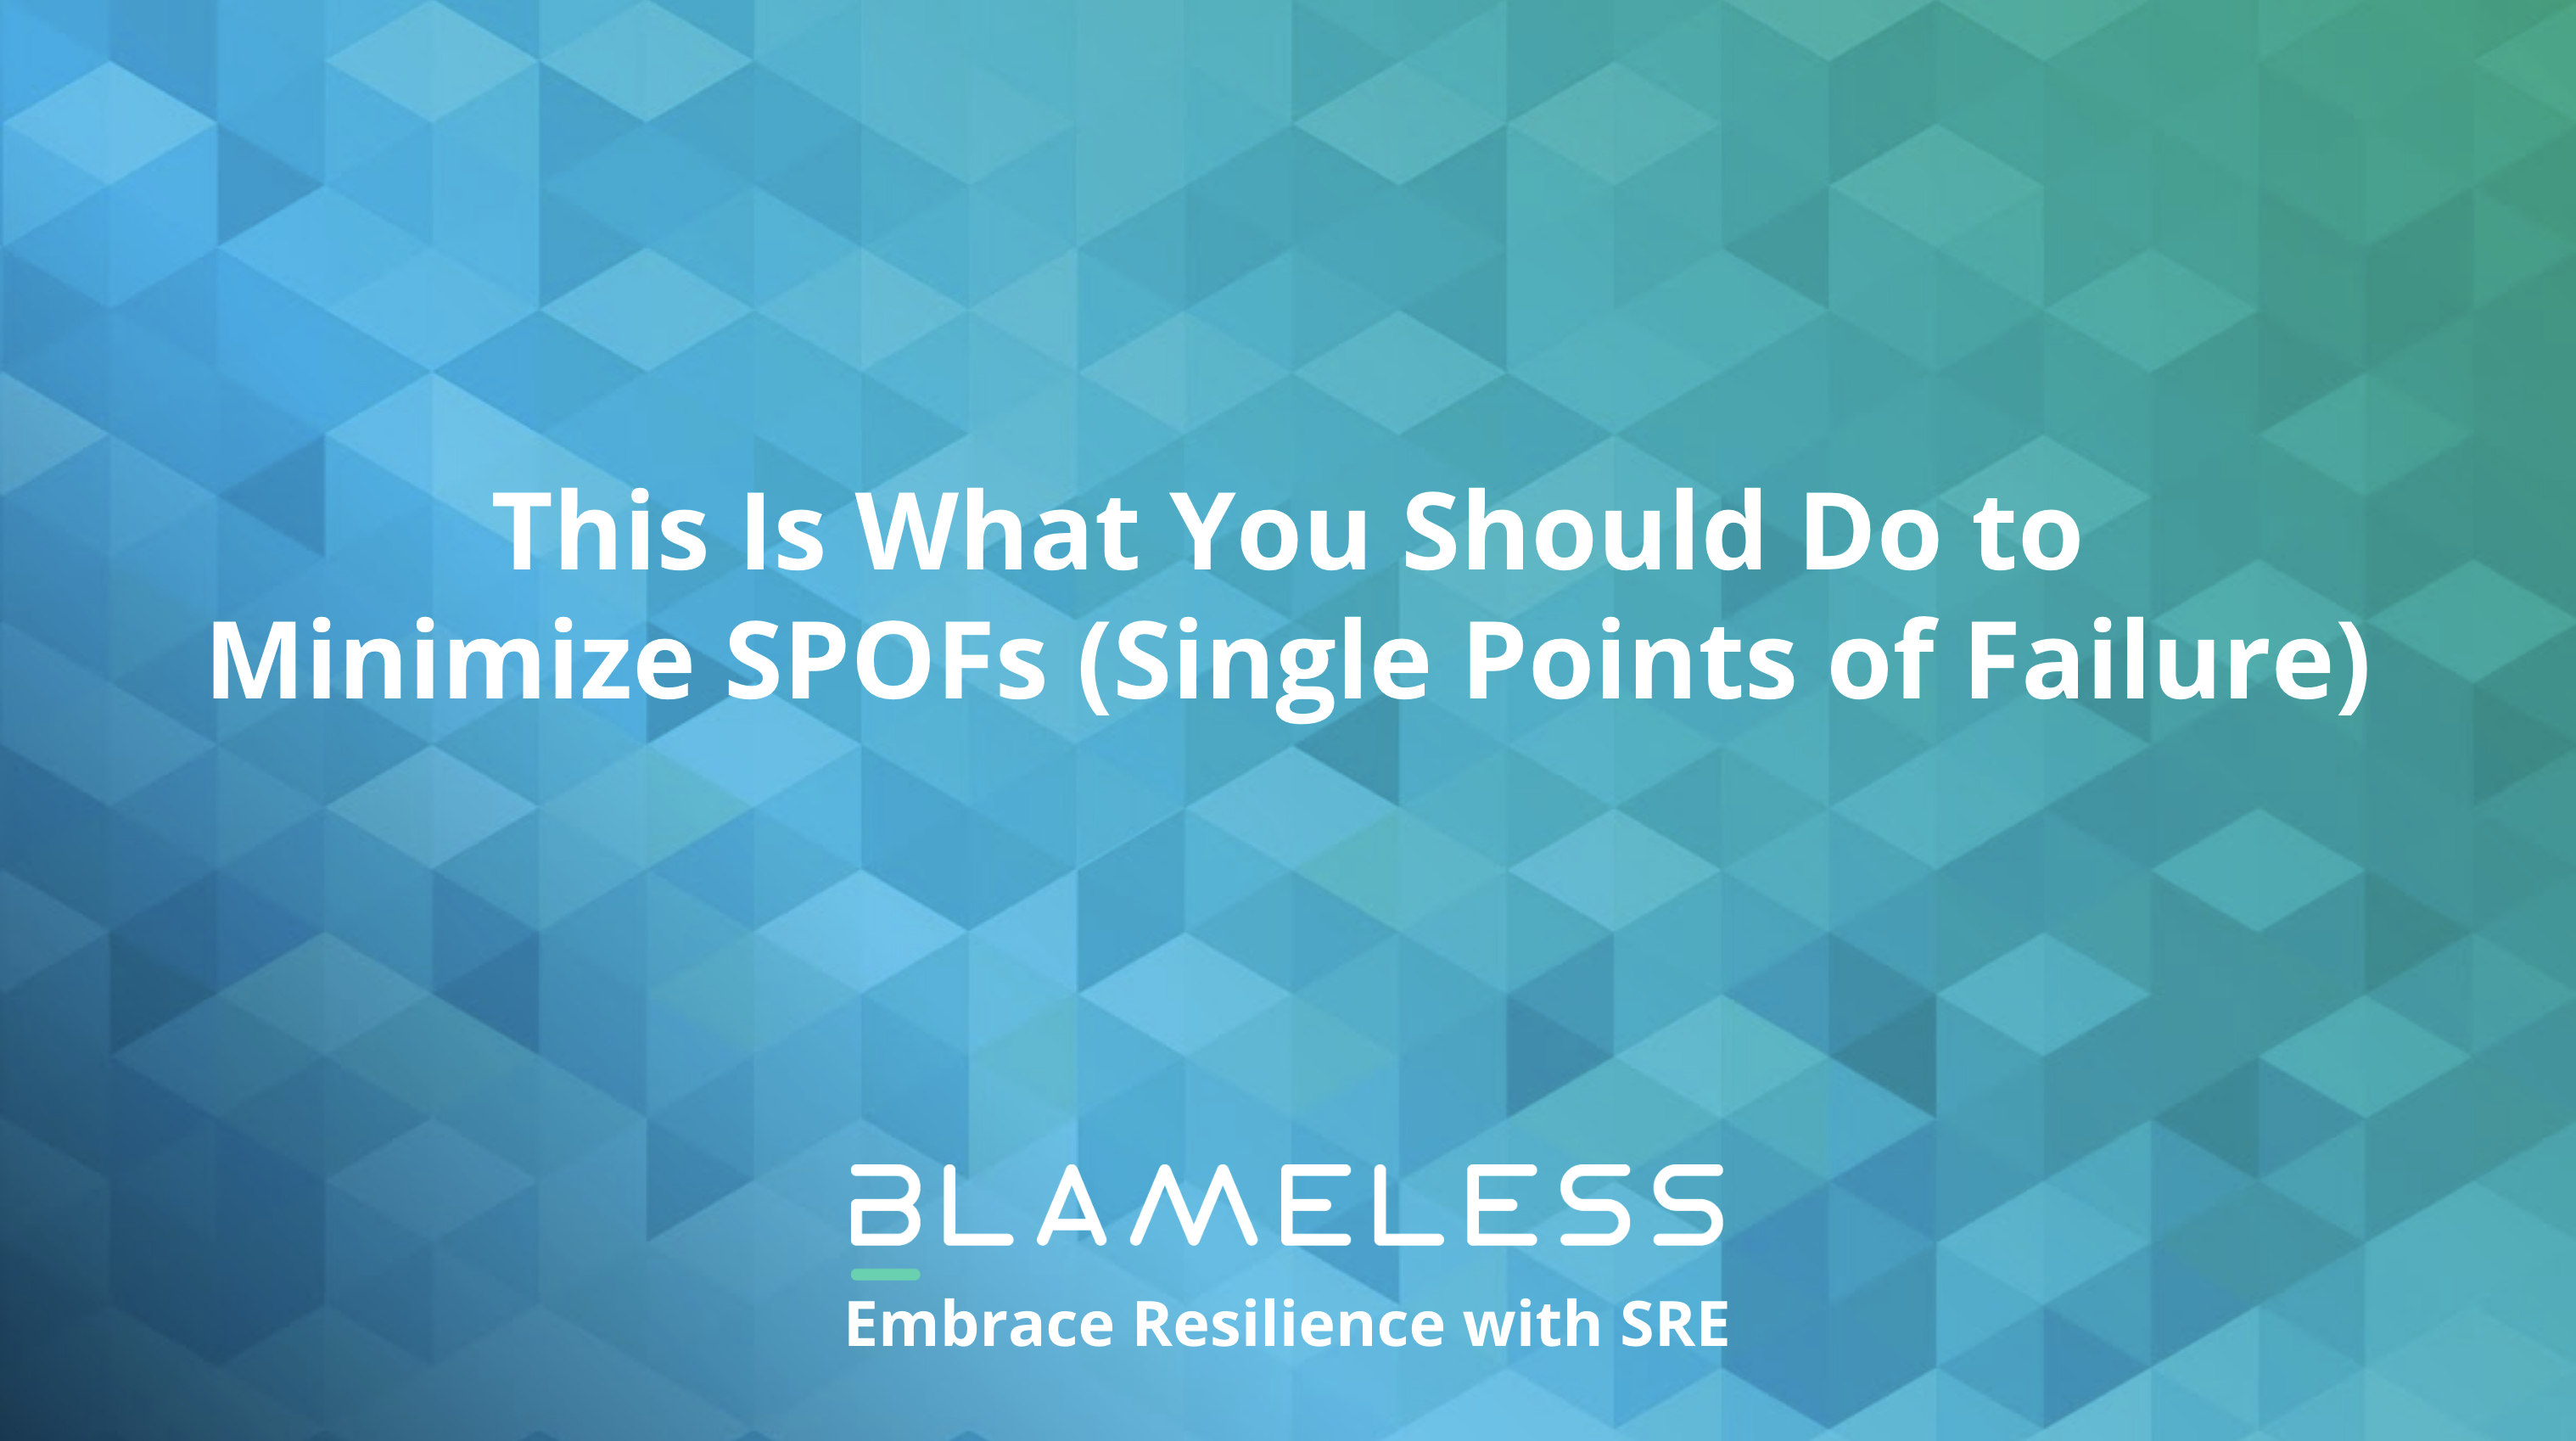 This is What you Should do to Minimize SPOFS